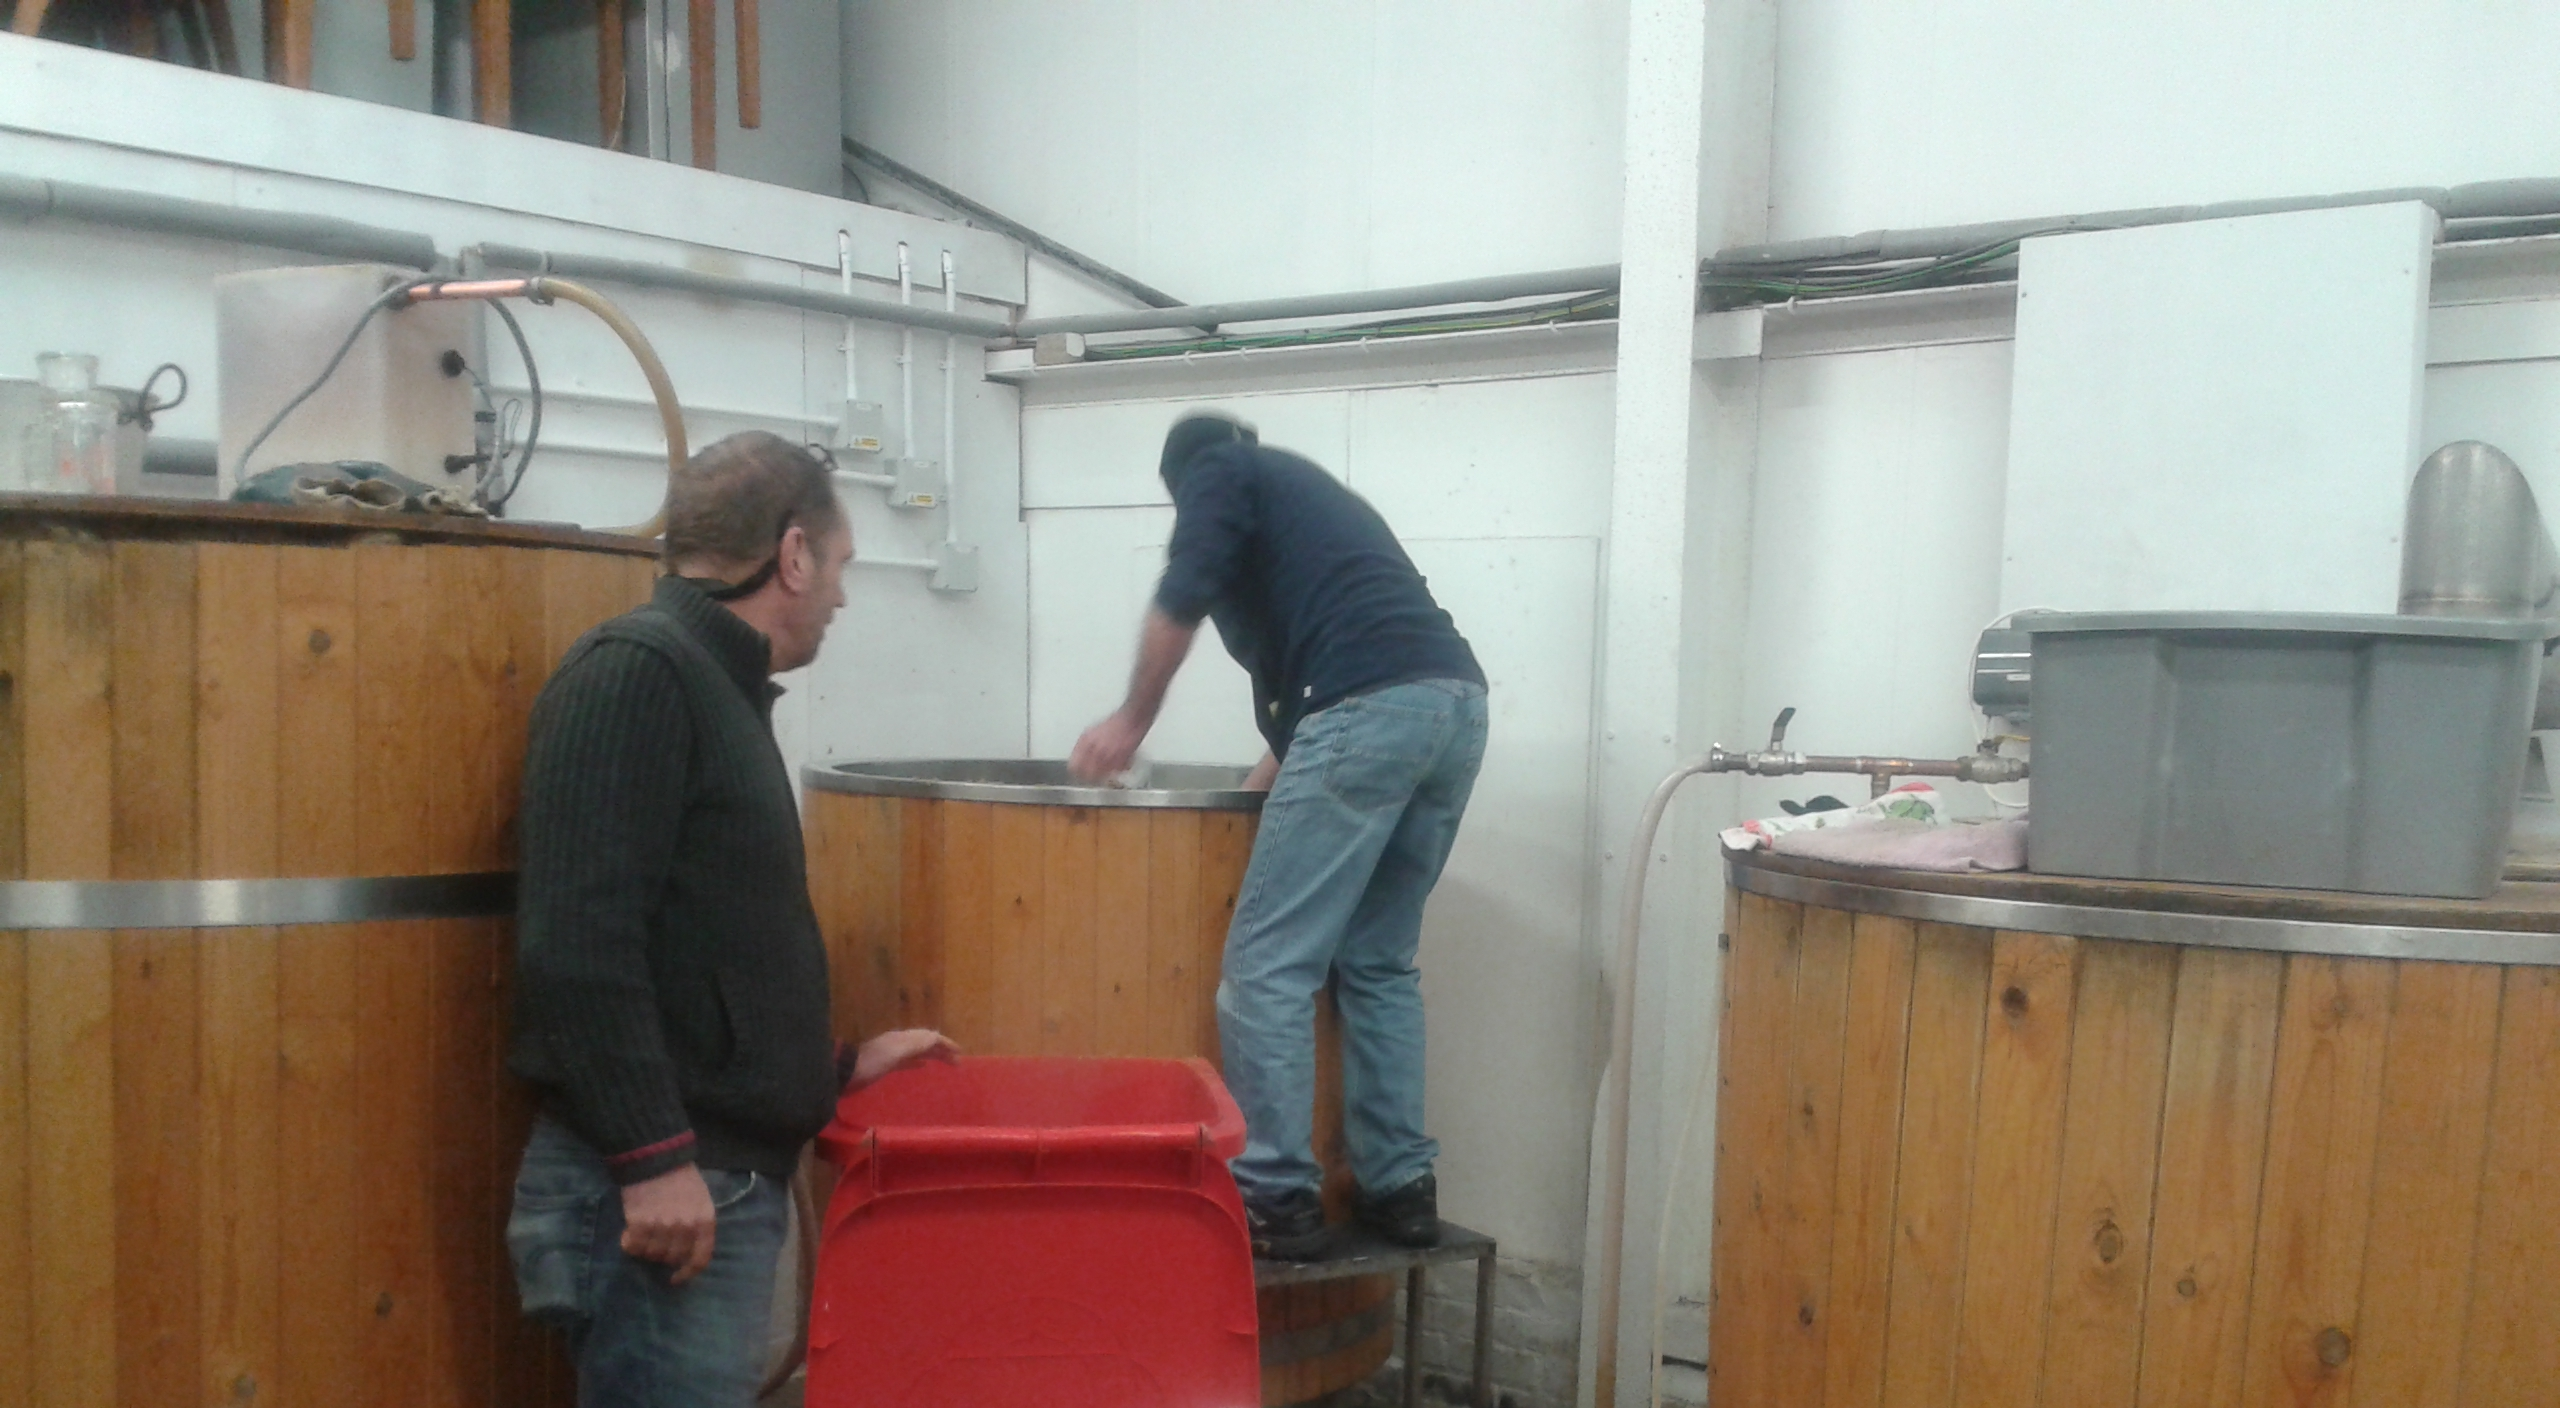 Discover the tricks of the brewing trade and discover your inner brewer on a micro-brewery tour